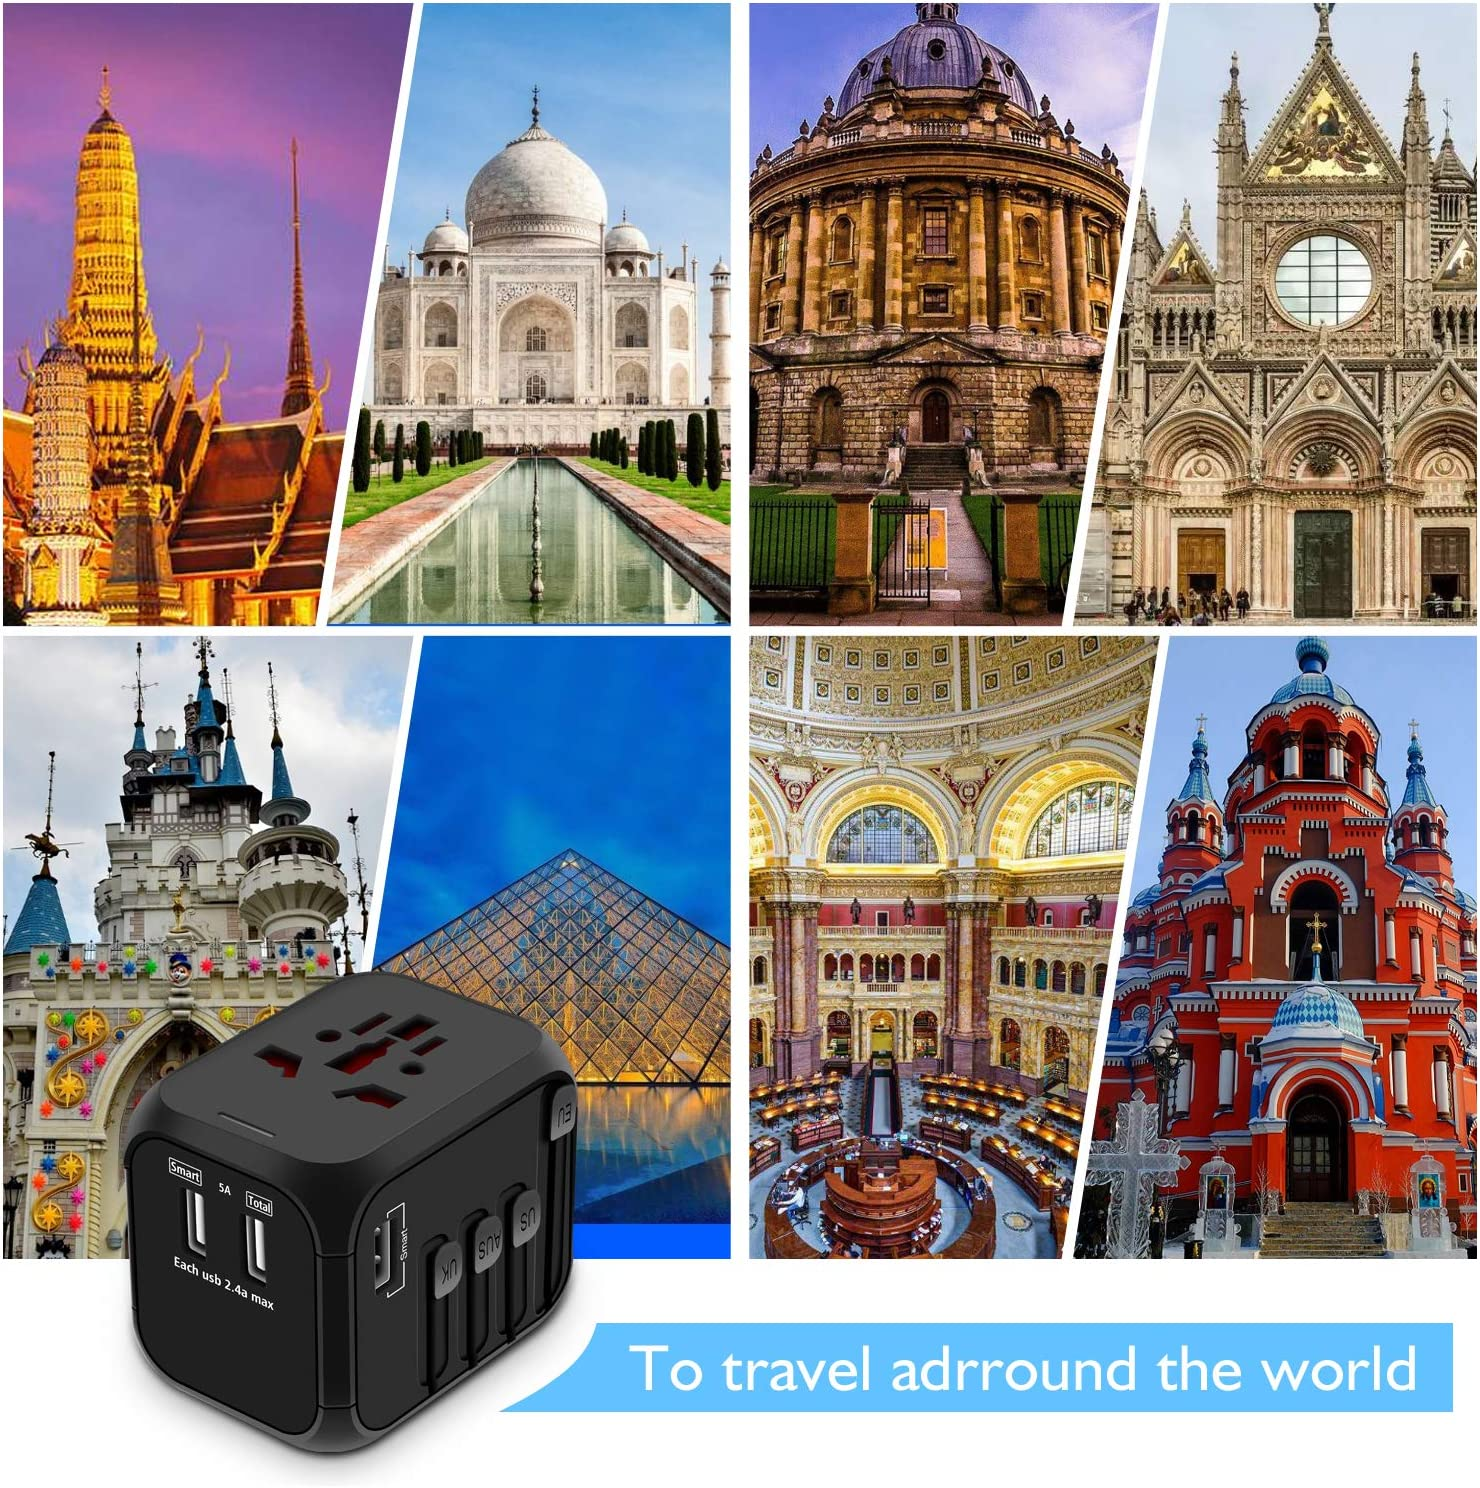 AU Asia Covers 150+Countries EU European Adapter Travel Power Adapter Wall Charger for UK All-in-one International Power Adapter with 4 USB Ports Upgraded Universal Travel Adapter